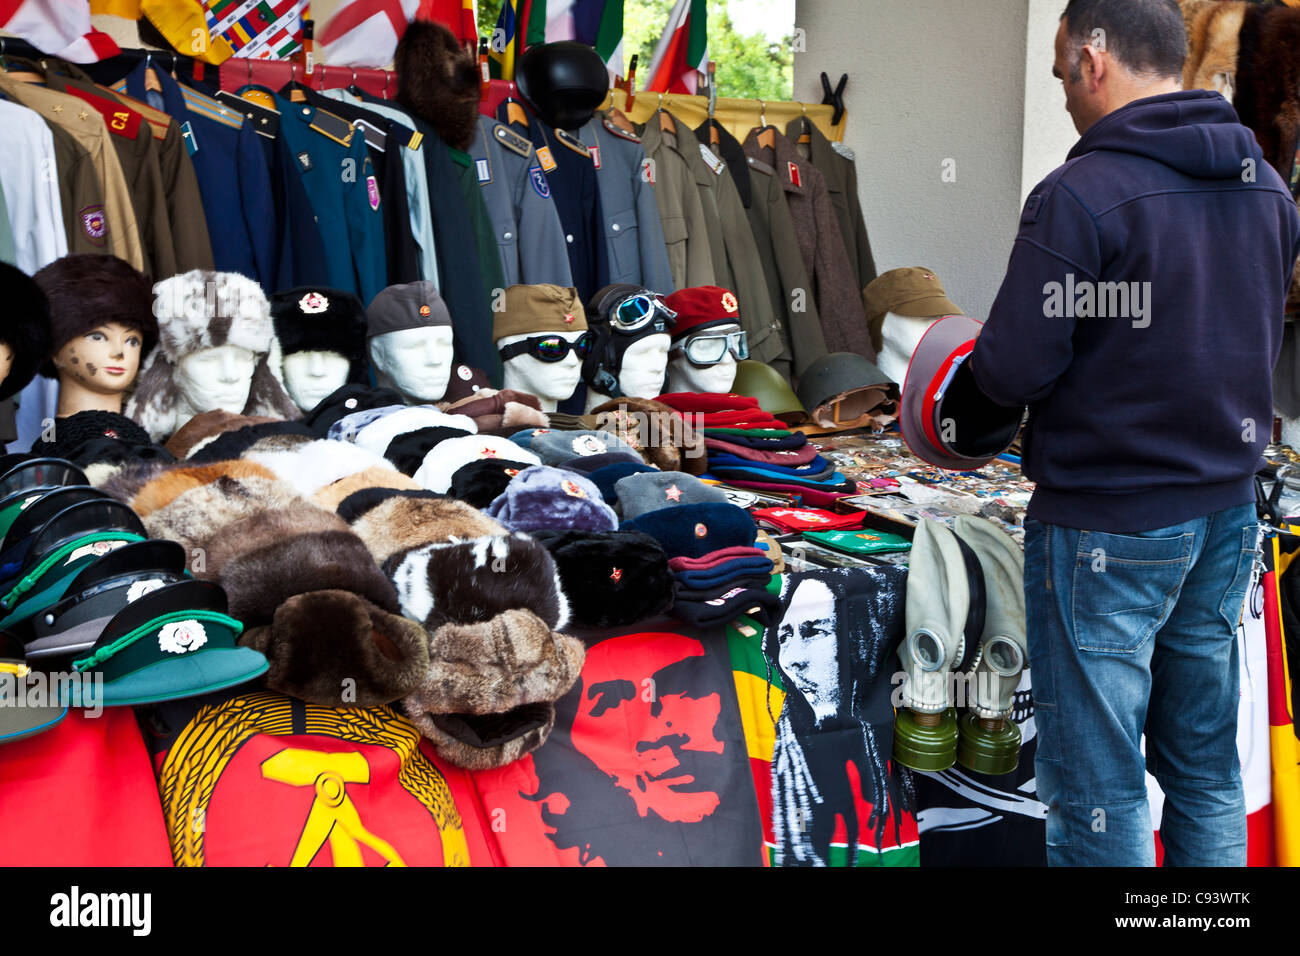 A male tourist inspects a hat and wartime military uniforms and memorabilia on a tourist souvenir stall in Berlin, - Stock Image